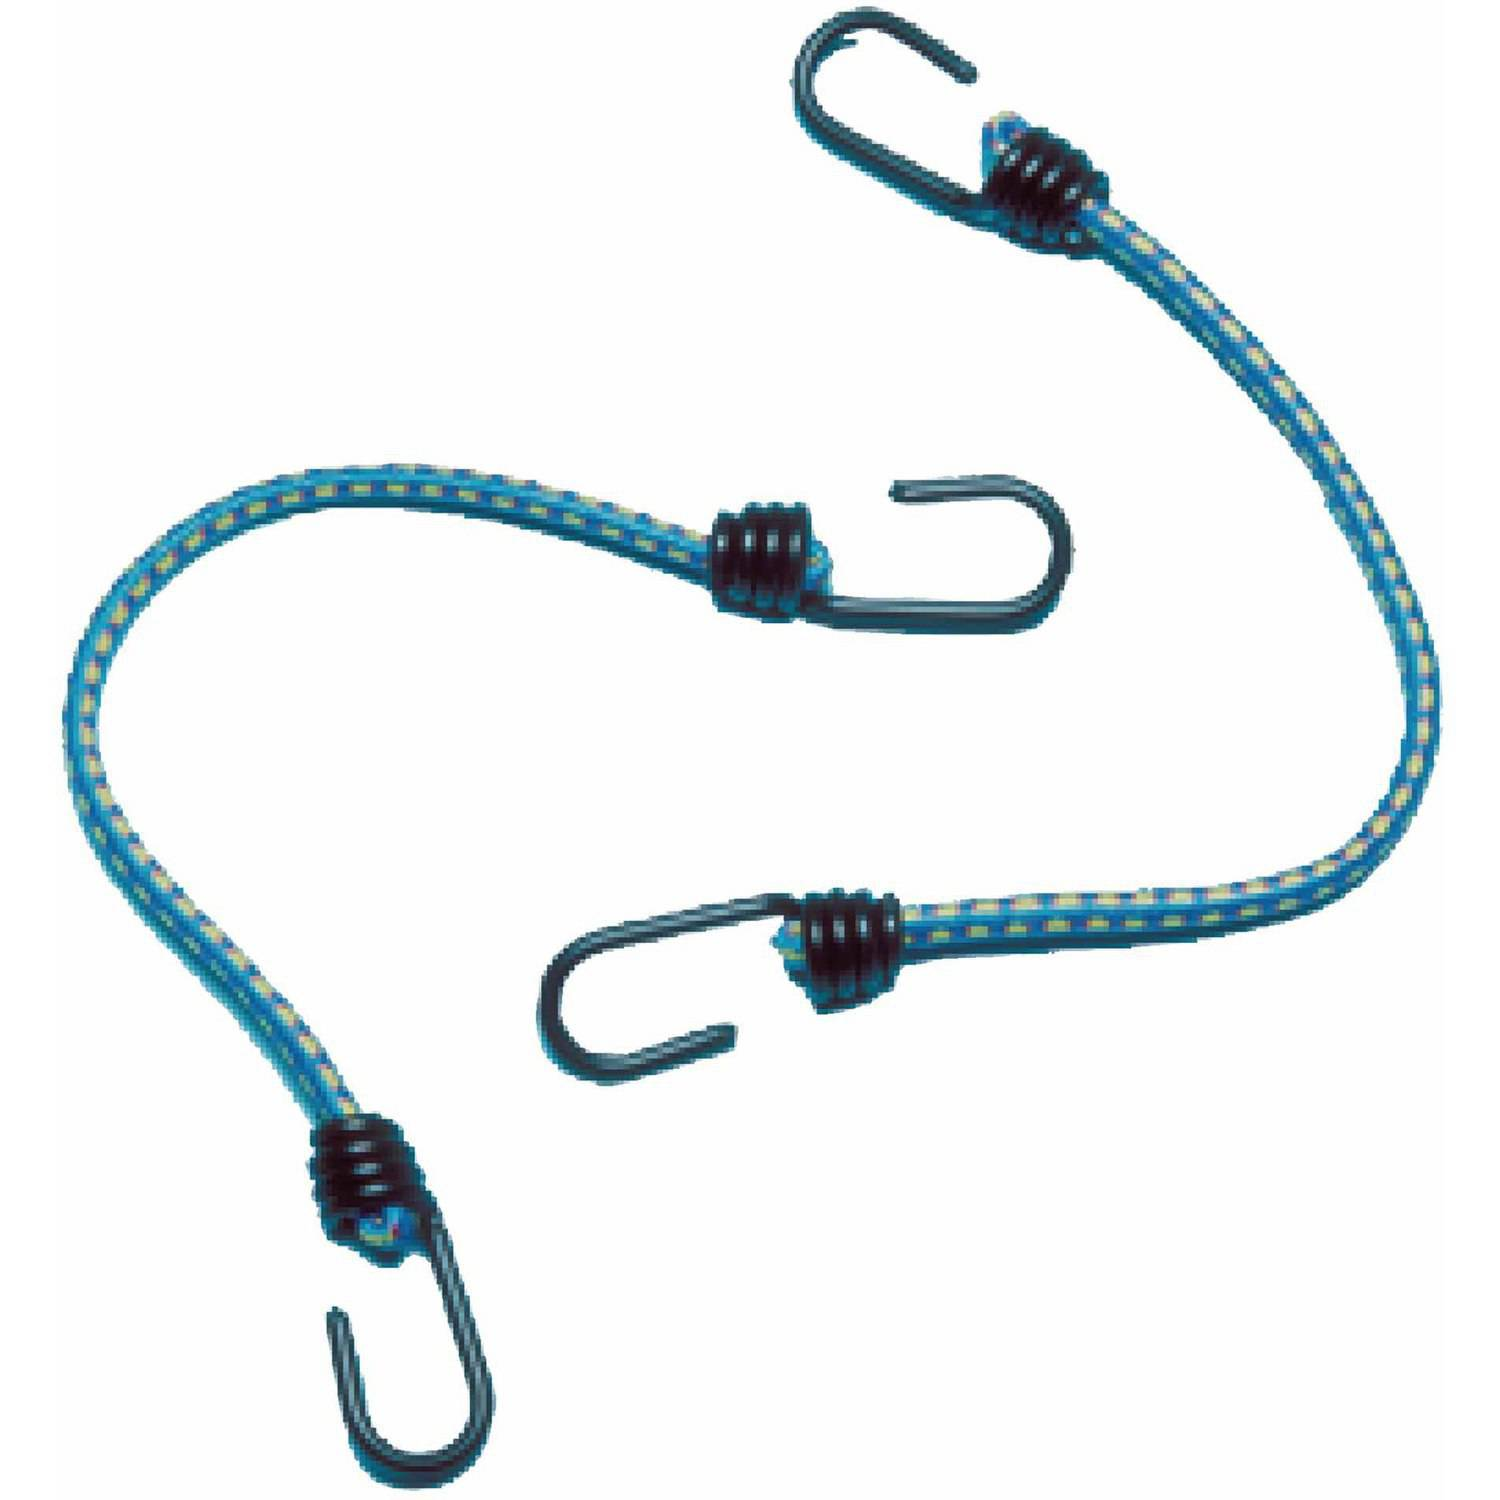 "Sta-Put Marine 5/16"" Universal Bungee with Plastic-Coated Hook Ends, 2-Pack"